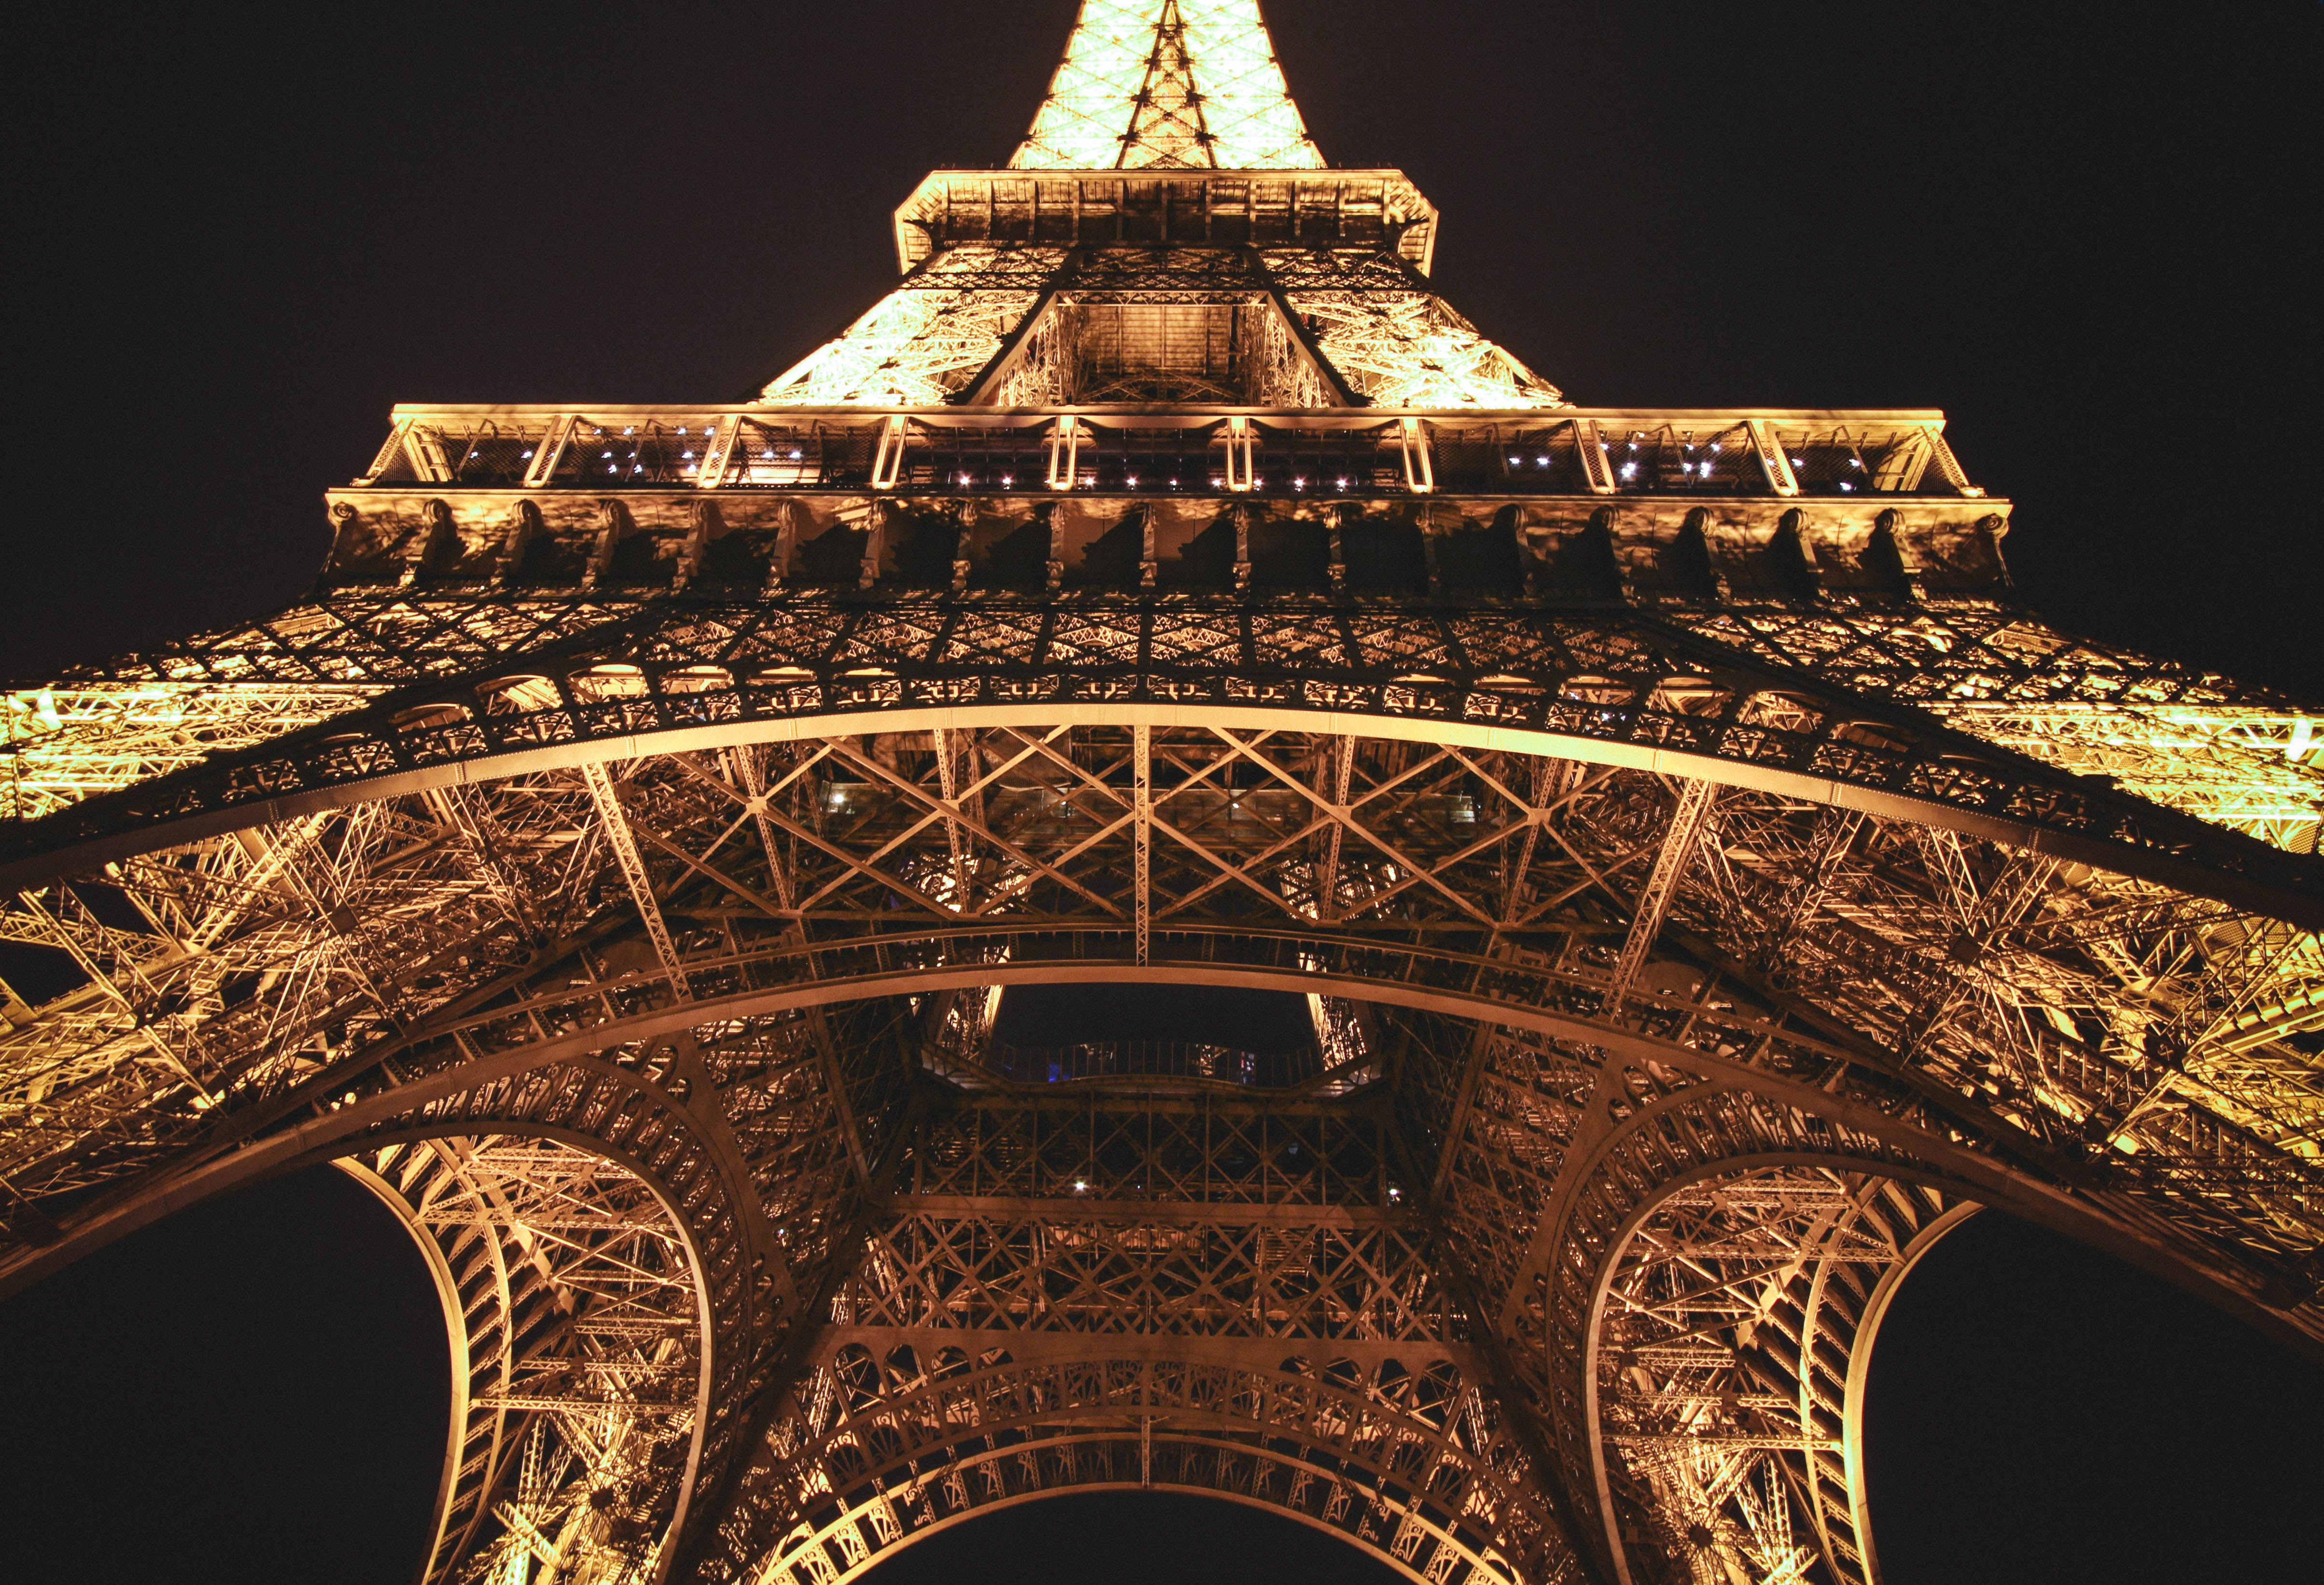 A centered shot looking up at the Eiffel Tower in Paris illuminated at night